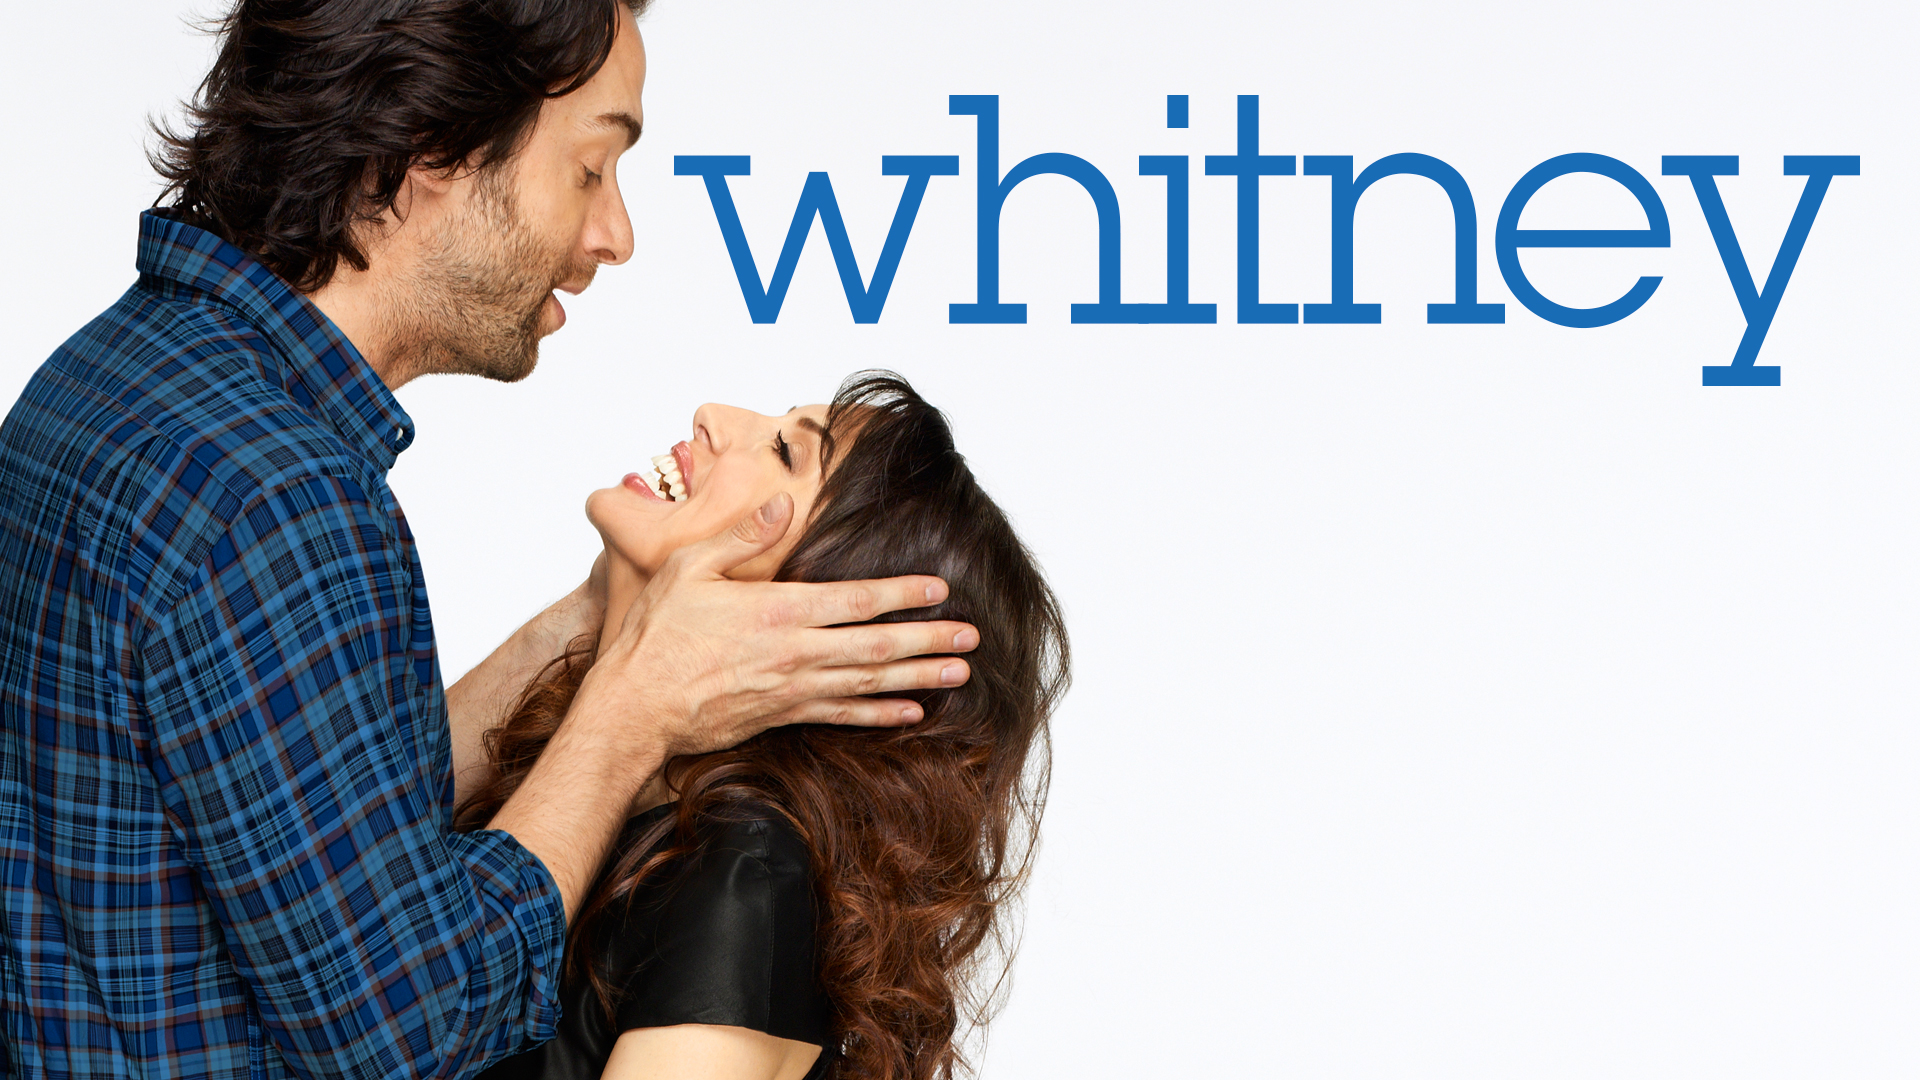 Watch Whitney Episodes - NBC.com